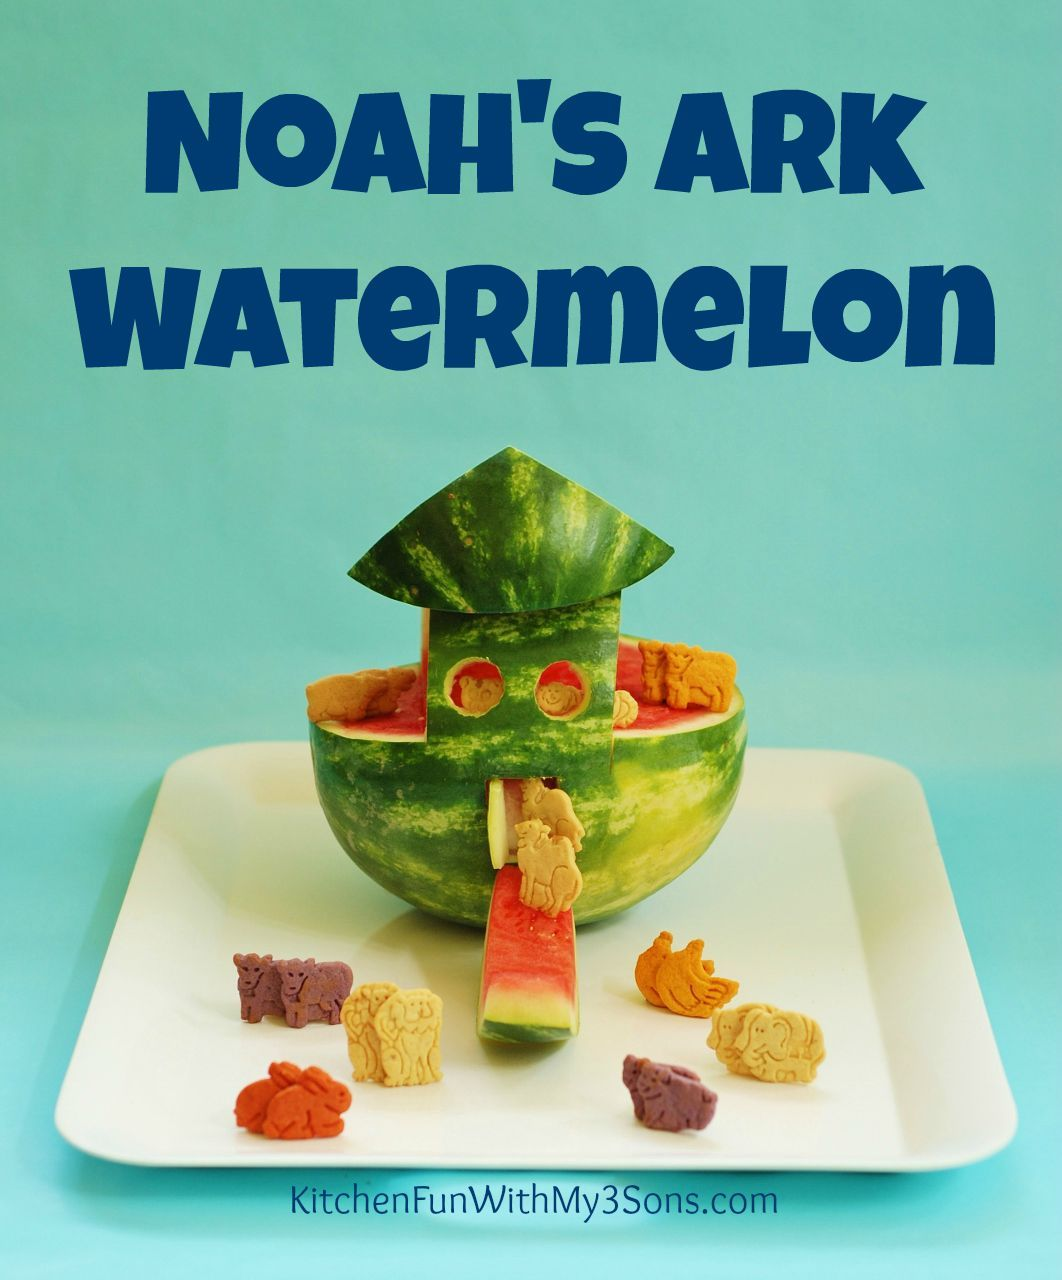 Noah S Ark Watermelon Snack From Kitchenfunwithmy3sons Com Kitchen